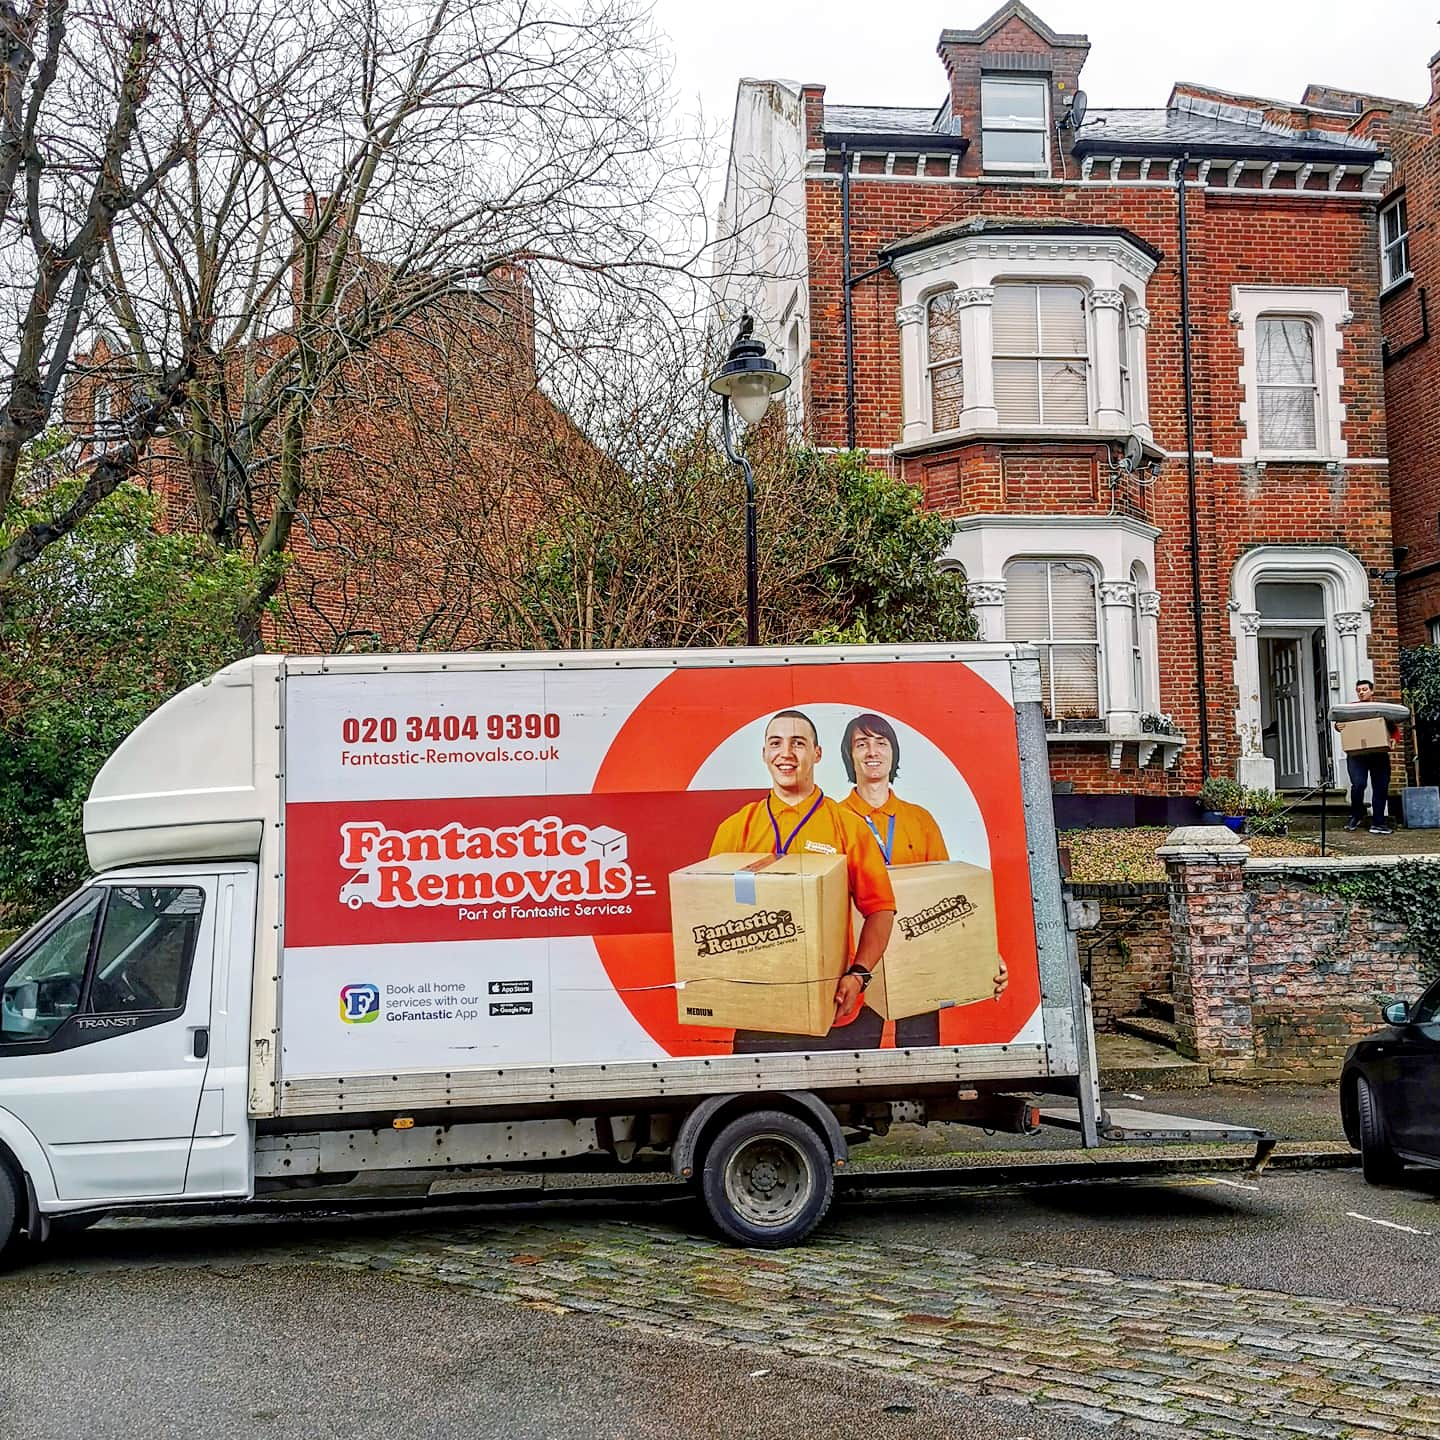 Fangtastic Services Removals Van infront of house